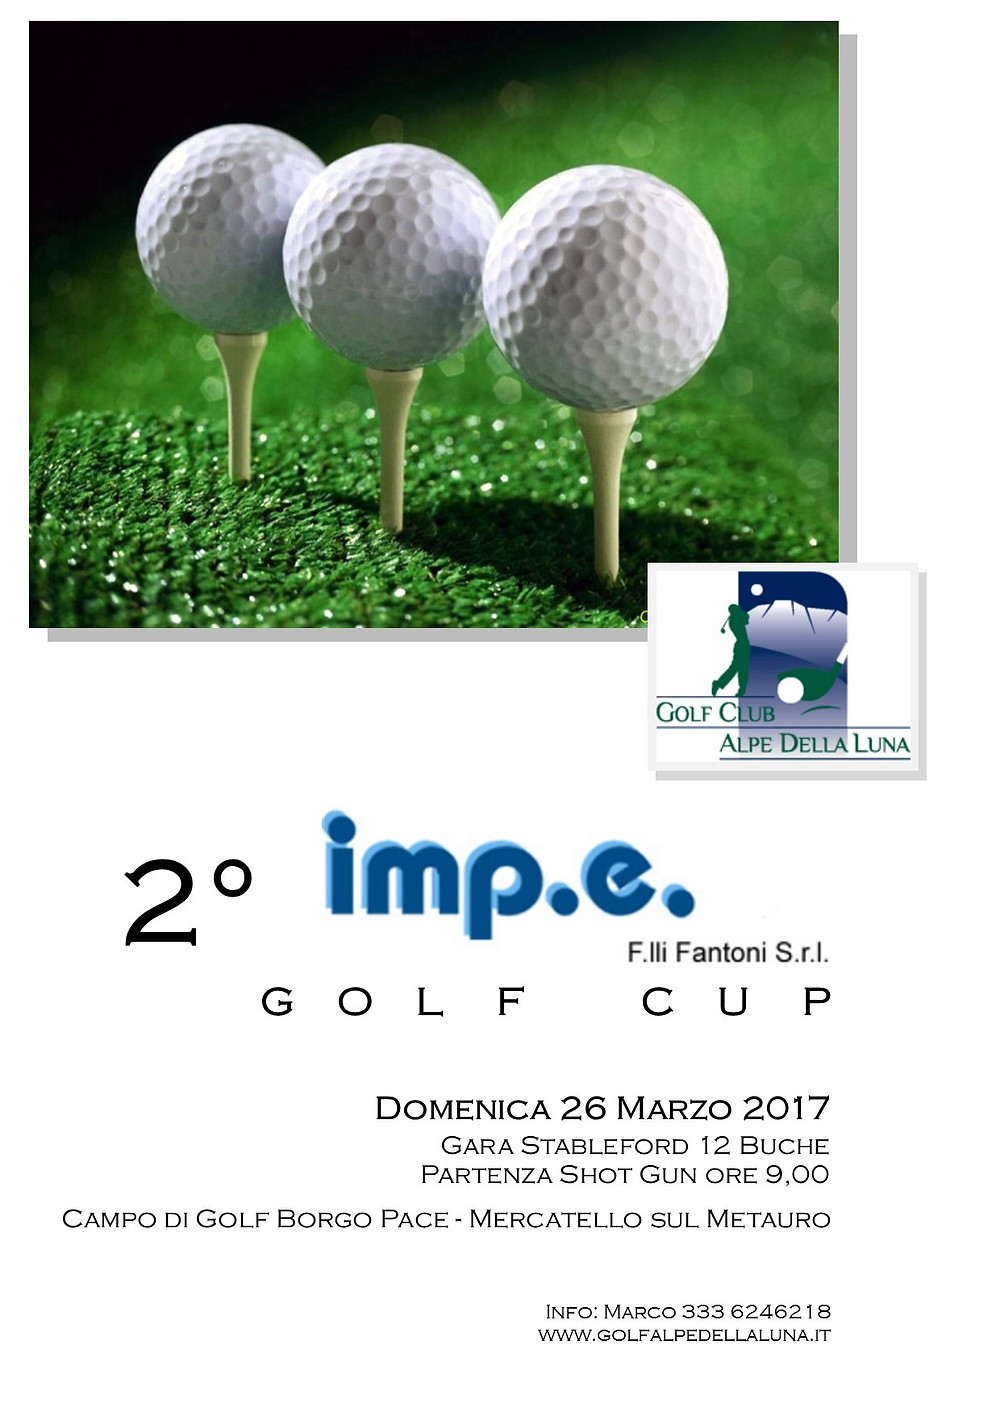 Premi: 1° e 2° netto di 1° Categoria - Premi: 1° e 2° netto di 2° Categoria 1° Lordo - 1° Seniores Premi Speciali: Nearest to the Pin, Drive Contest Iscrizione gara: €20,00 (€10,00 Juniores) Green fee: €15,00 (€10,00 Juniores) Green Fee Associati Caldese: gratuito Green Fee Associati Montegiove: €5,00 Possibilità di noleggio di golf cart  Info e Iscrizioni: Marco 333 6246218 - Segreteria 339 2701581- 0722 547337